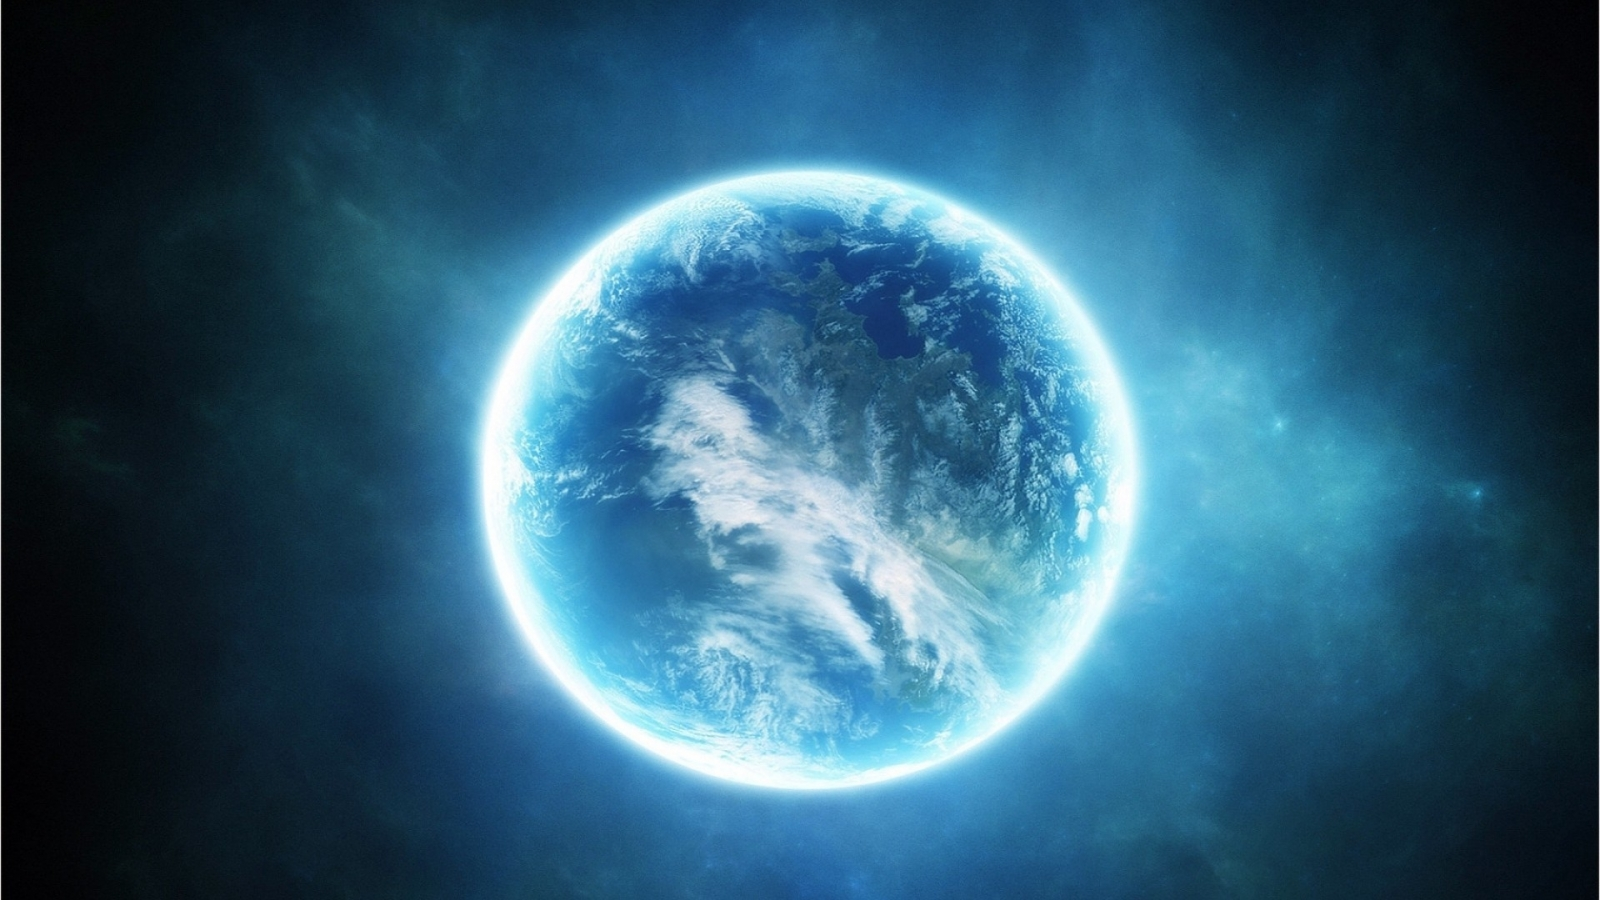 Planet Poster for 1600 x 900 HDTV resolution